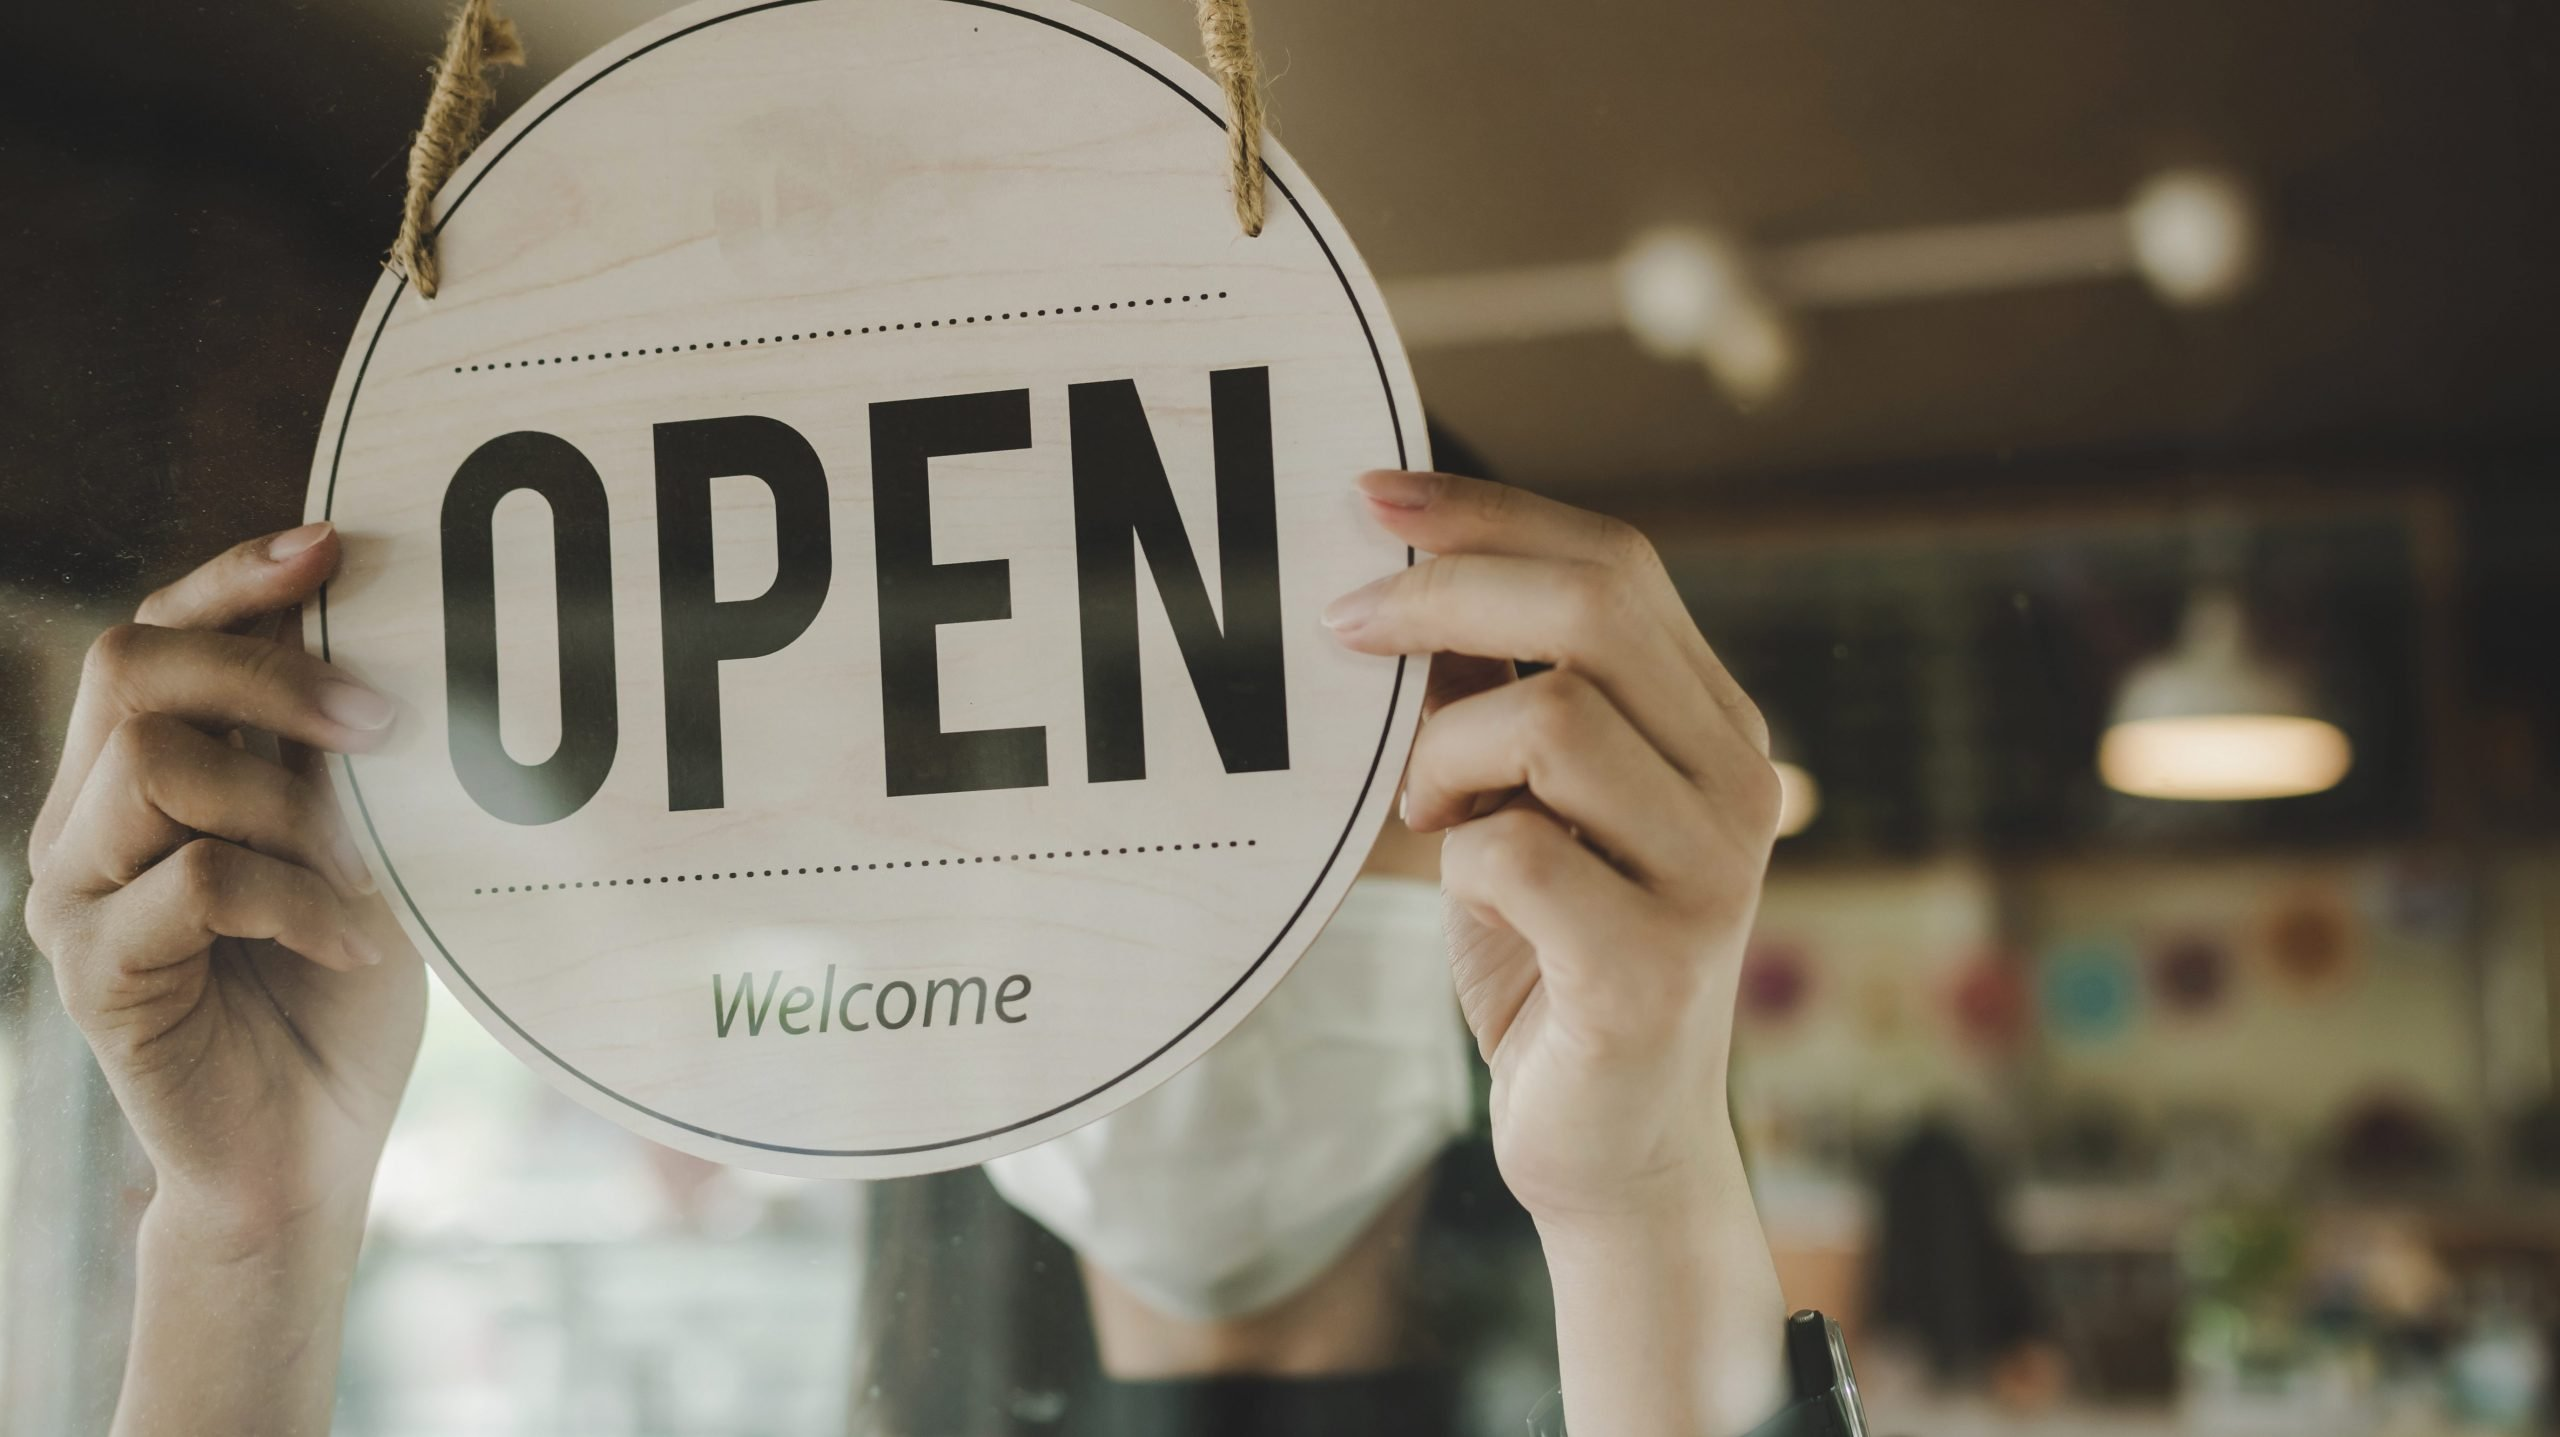 Back to work - open sign